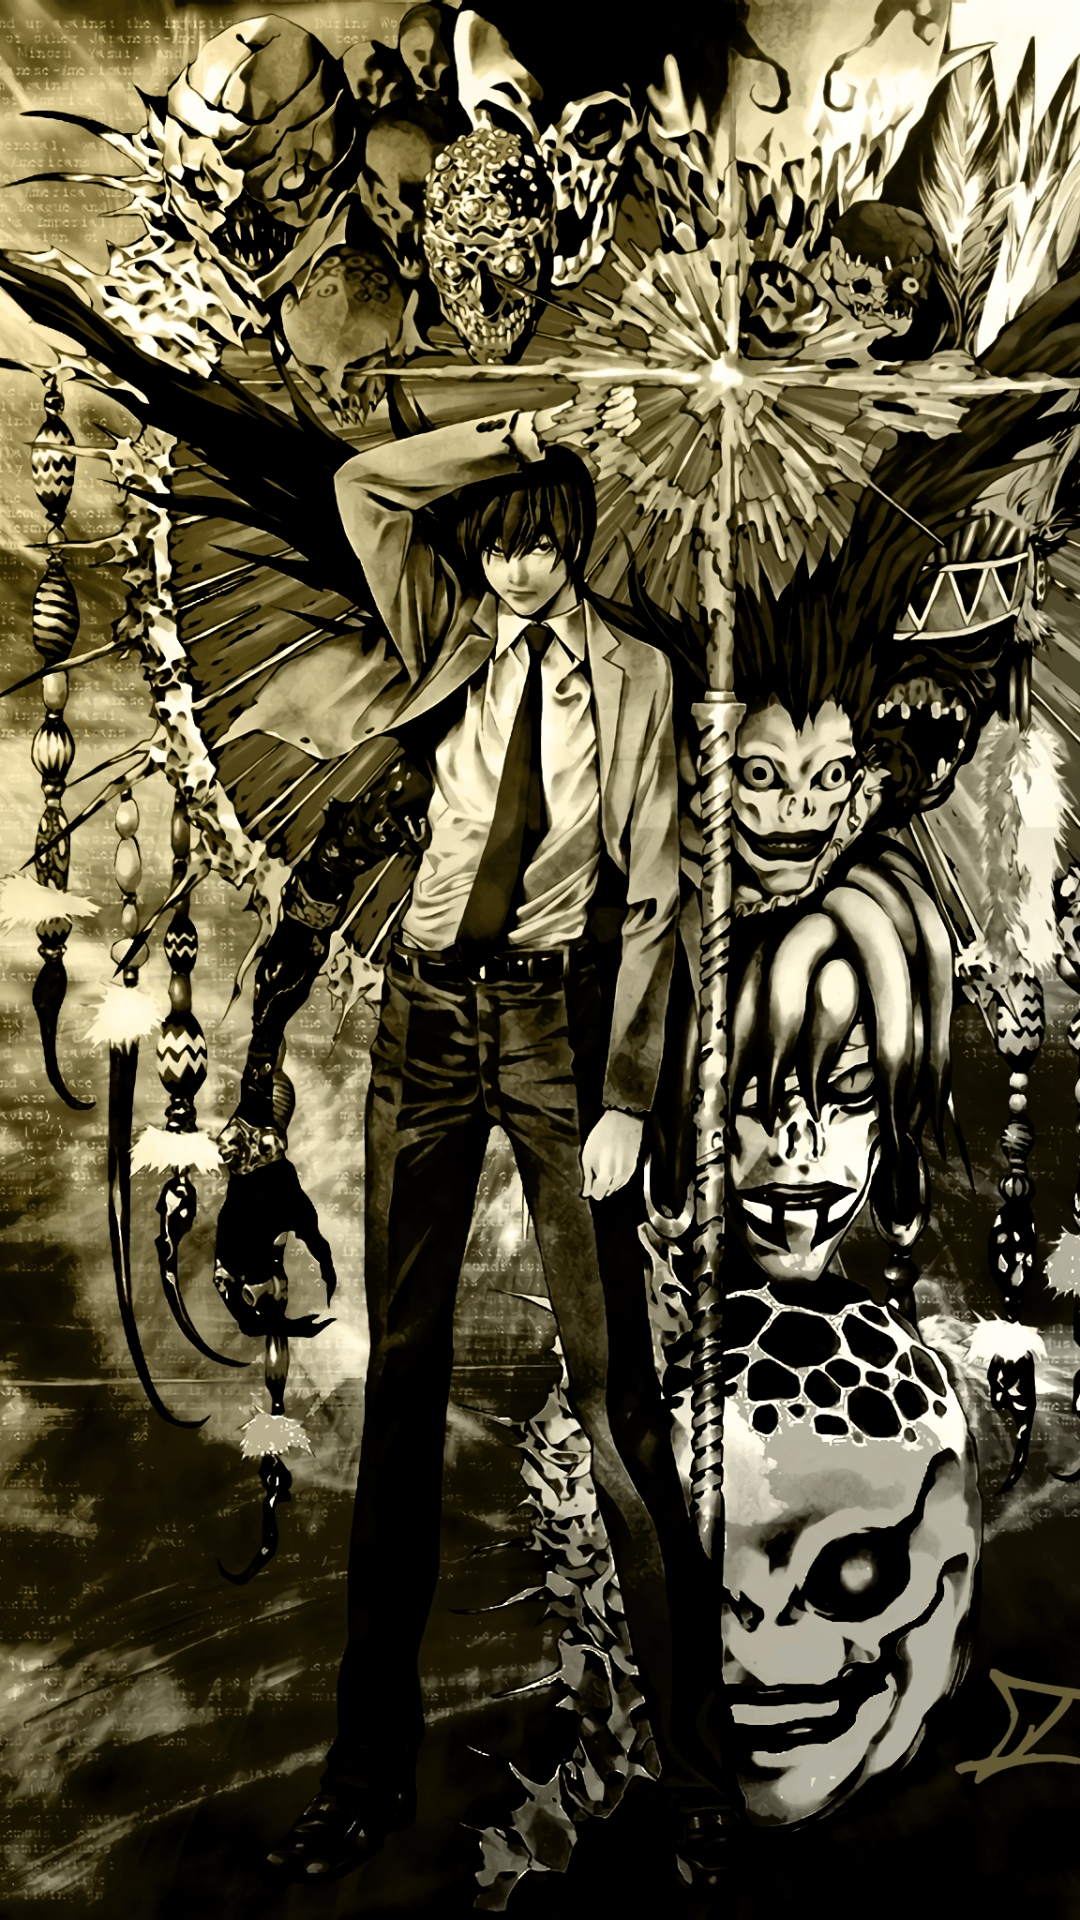 1080x1920 Anime/Death Note (1080x1920) Wallpaper ID: 144464 - Mobile Abyss